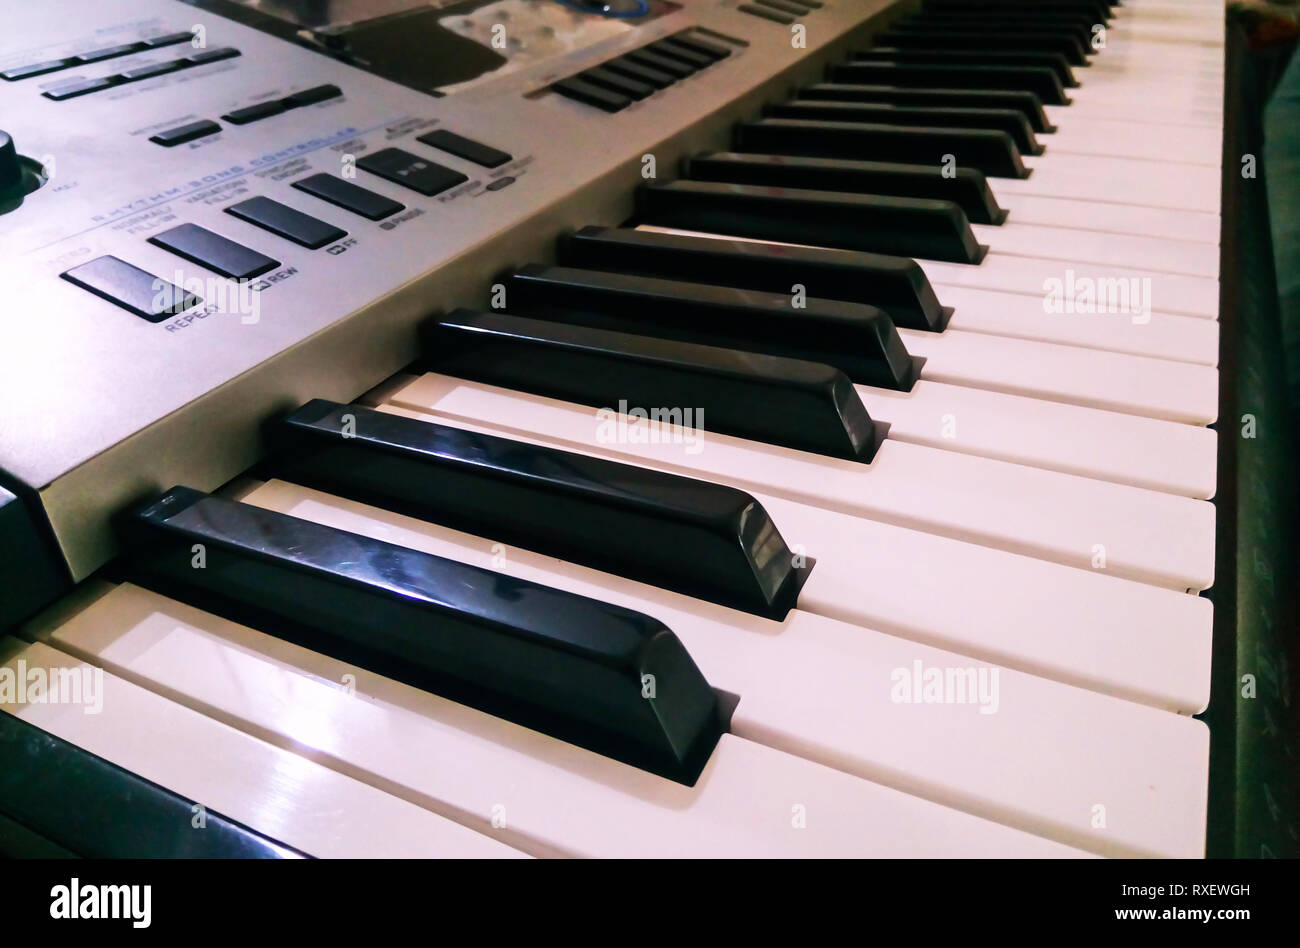 Close up view of electronic piano synthesizer Keyboard. selective focus and side angle view. - Stock Image